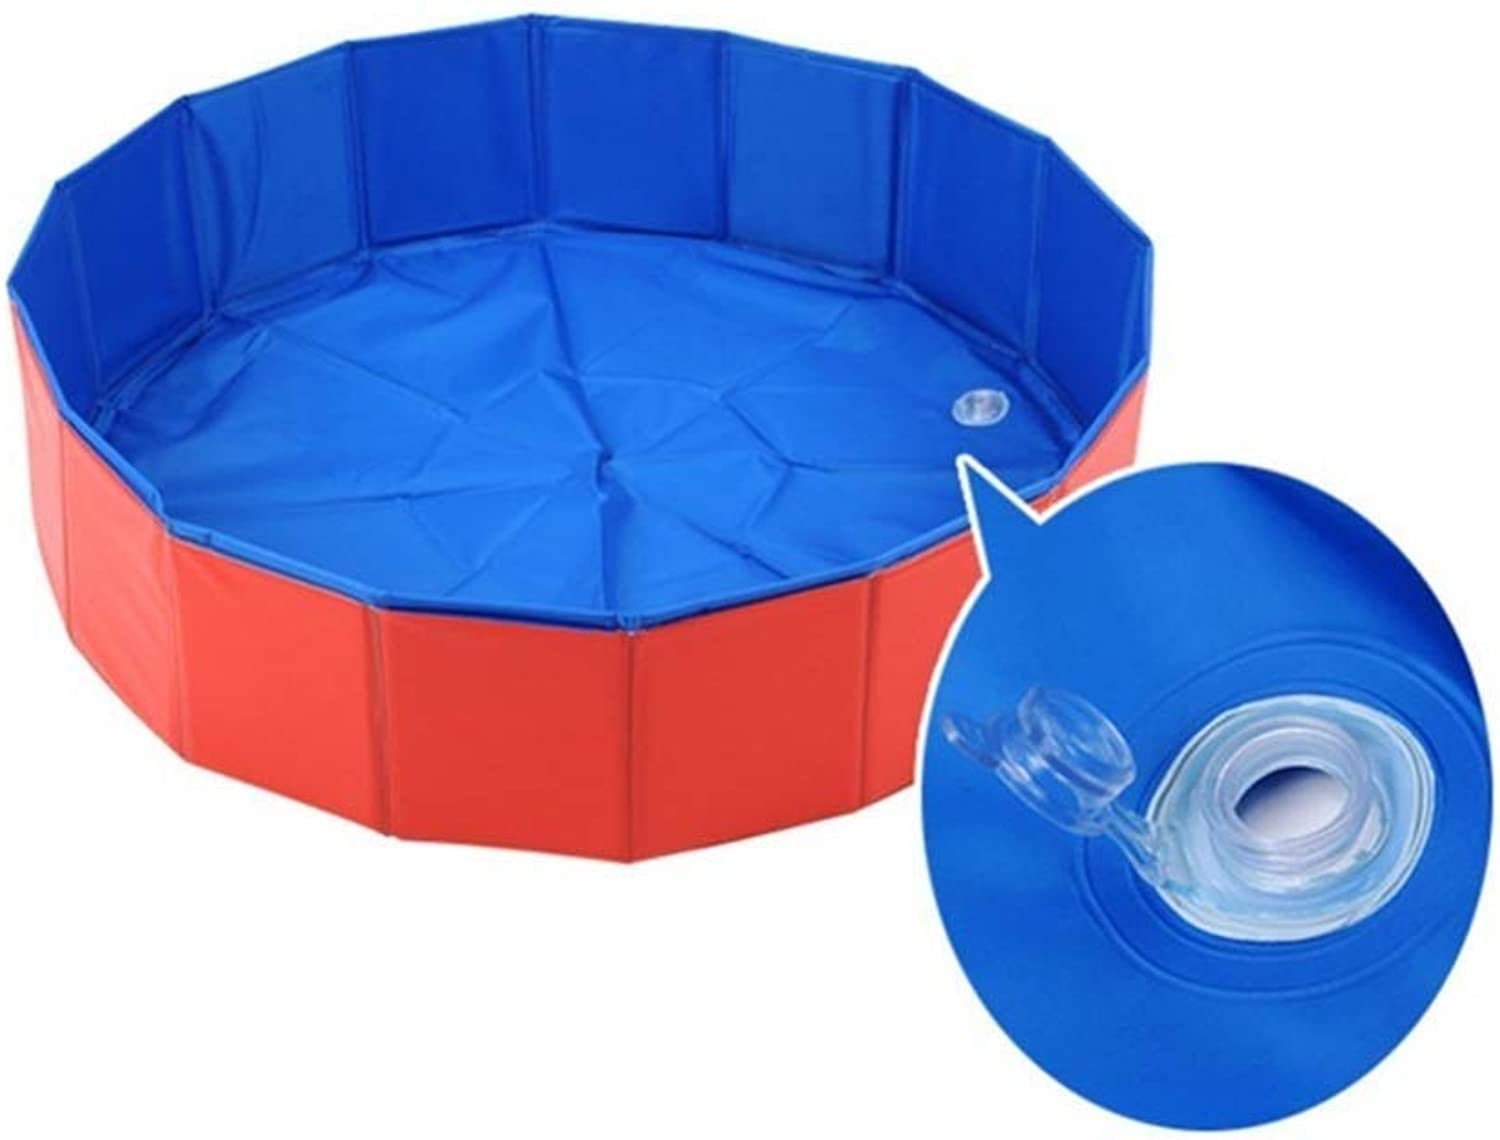 Pet Bath, PVC Pet Pool, Portable Collapsible Swimming Pool, Suitable for Medium and Large Pets, Indoor and Outdoor, Easy to Clean (Size   60x20cm)